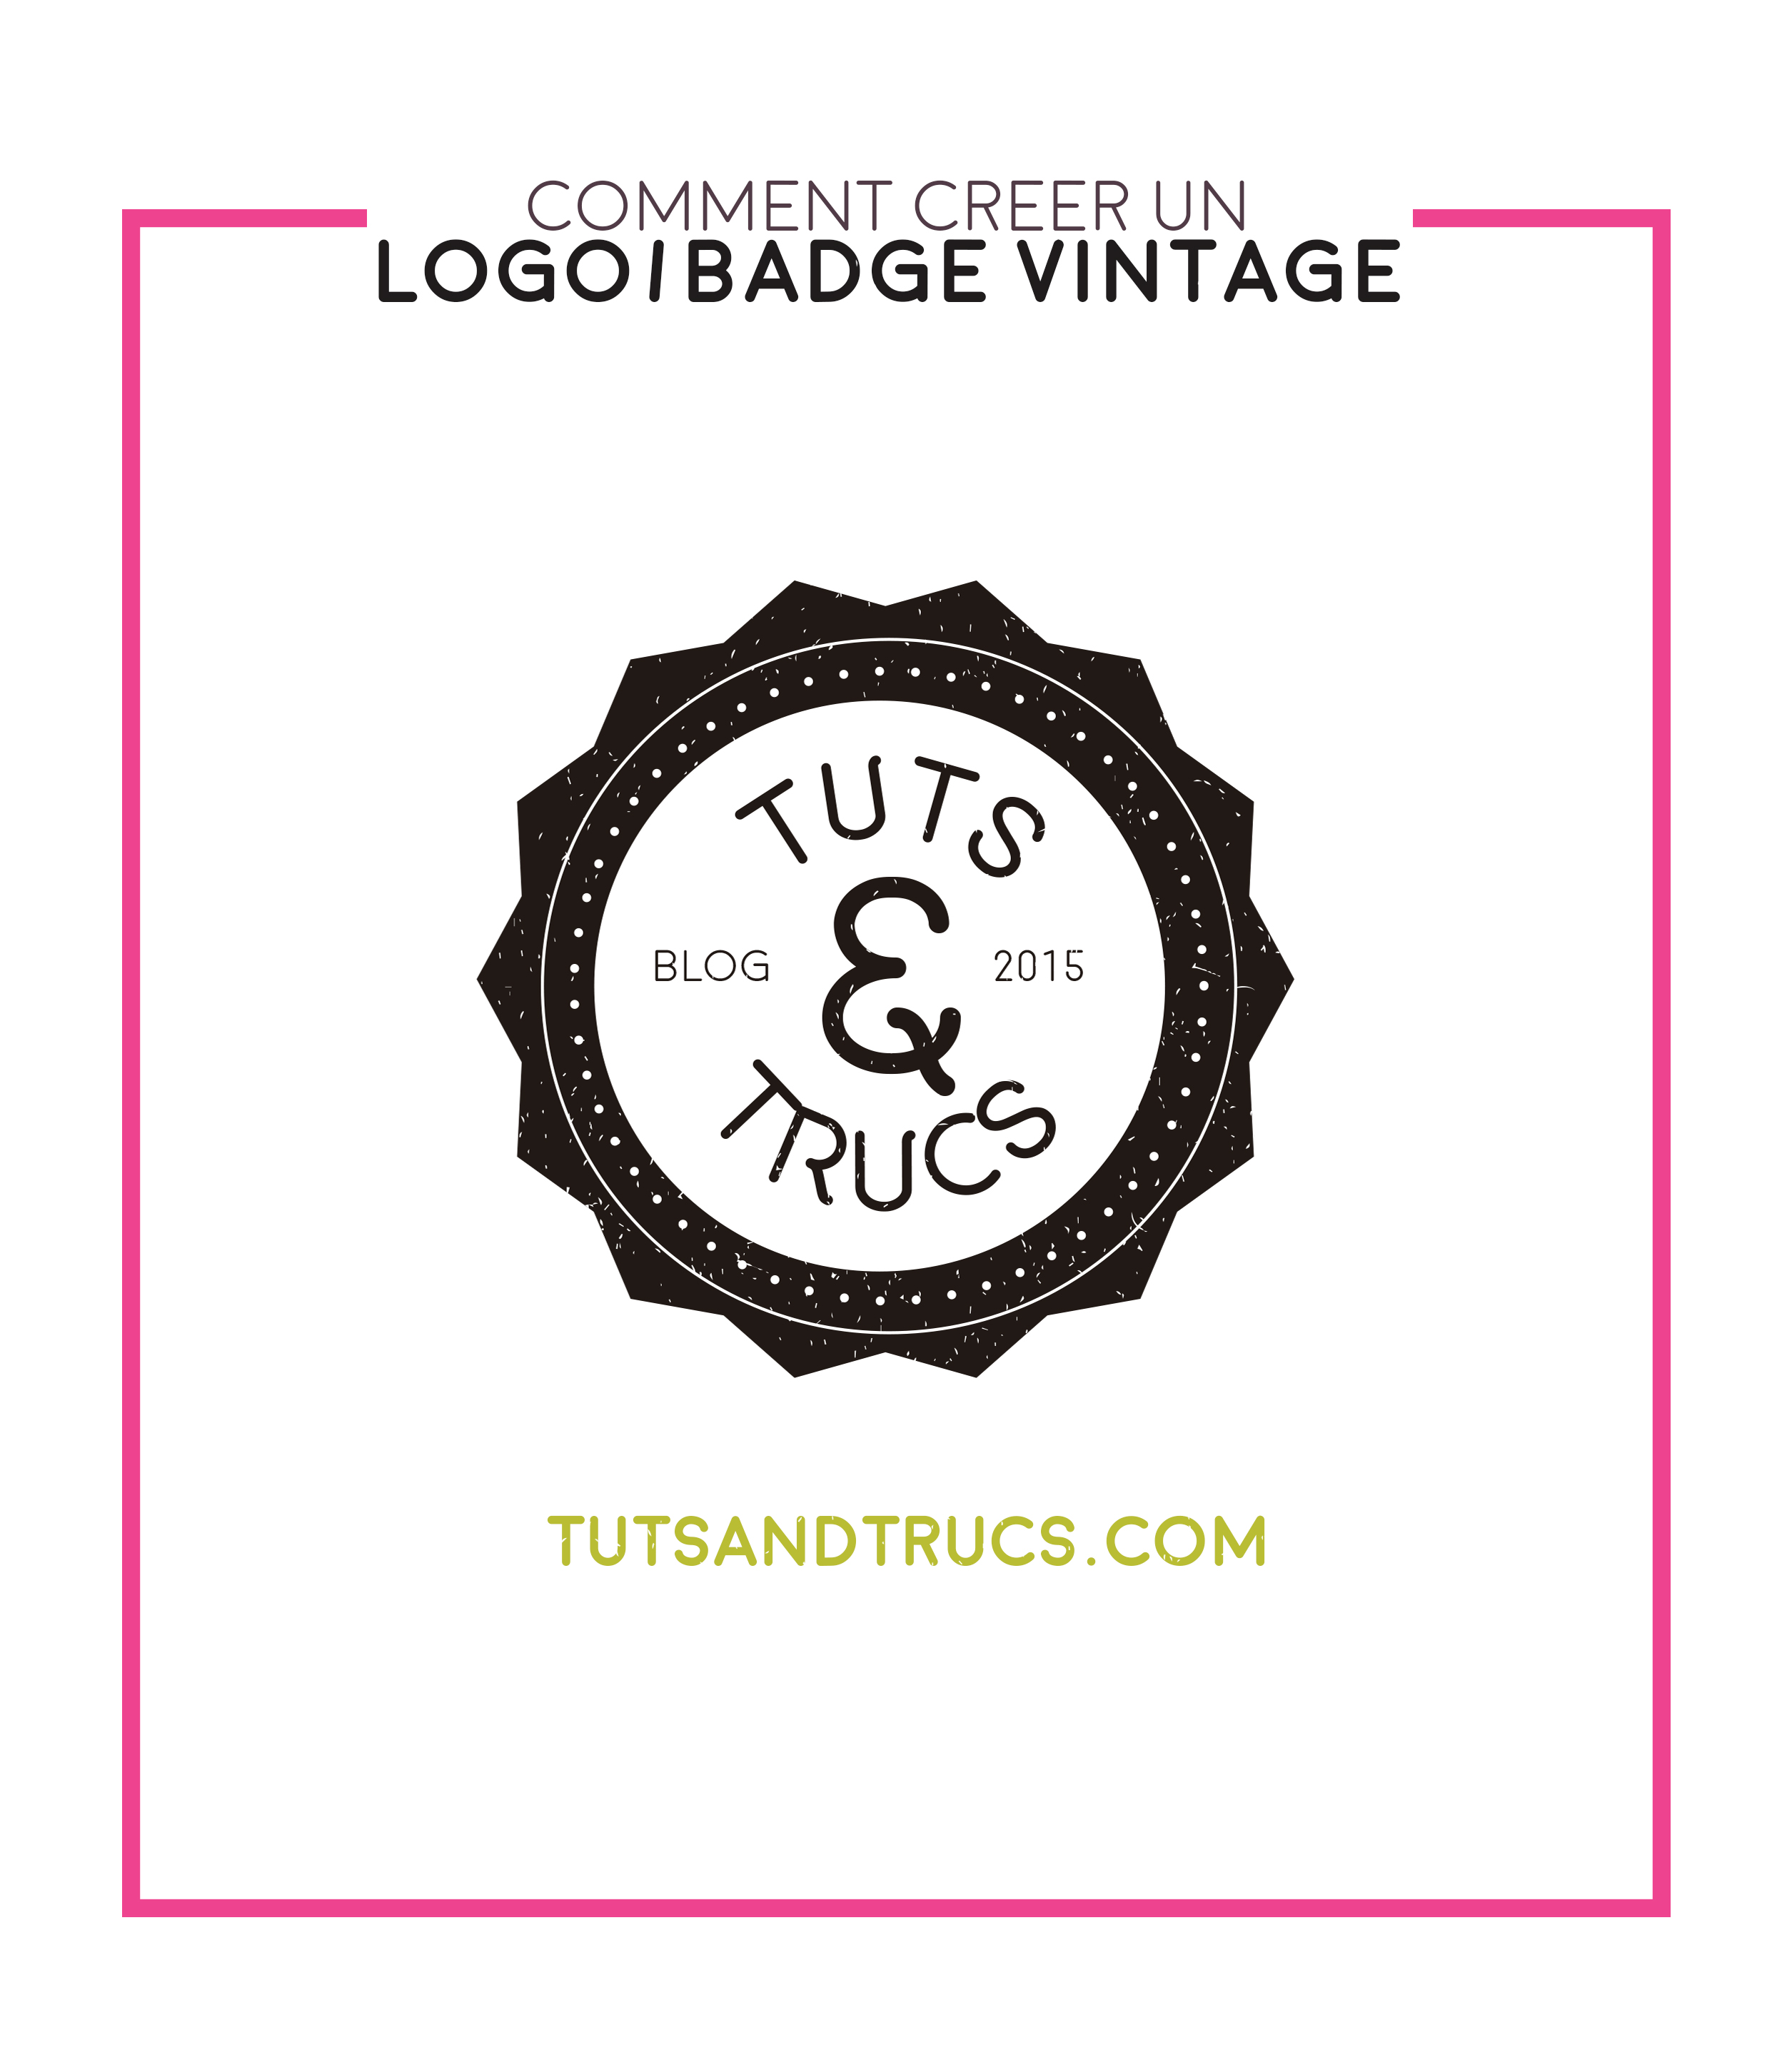 Comment creer un logo vintage by photosoma on deviantart - Comment creer un journal ...